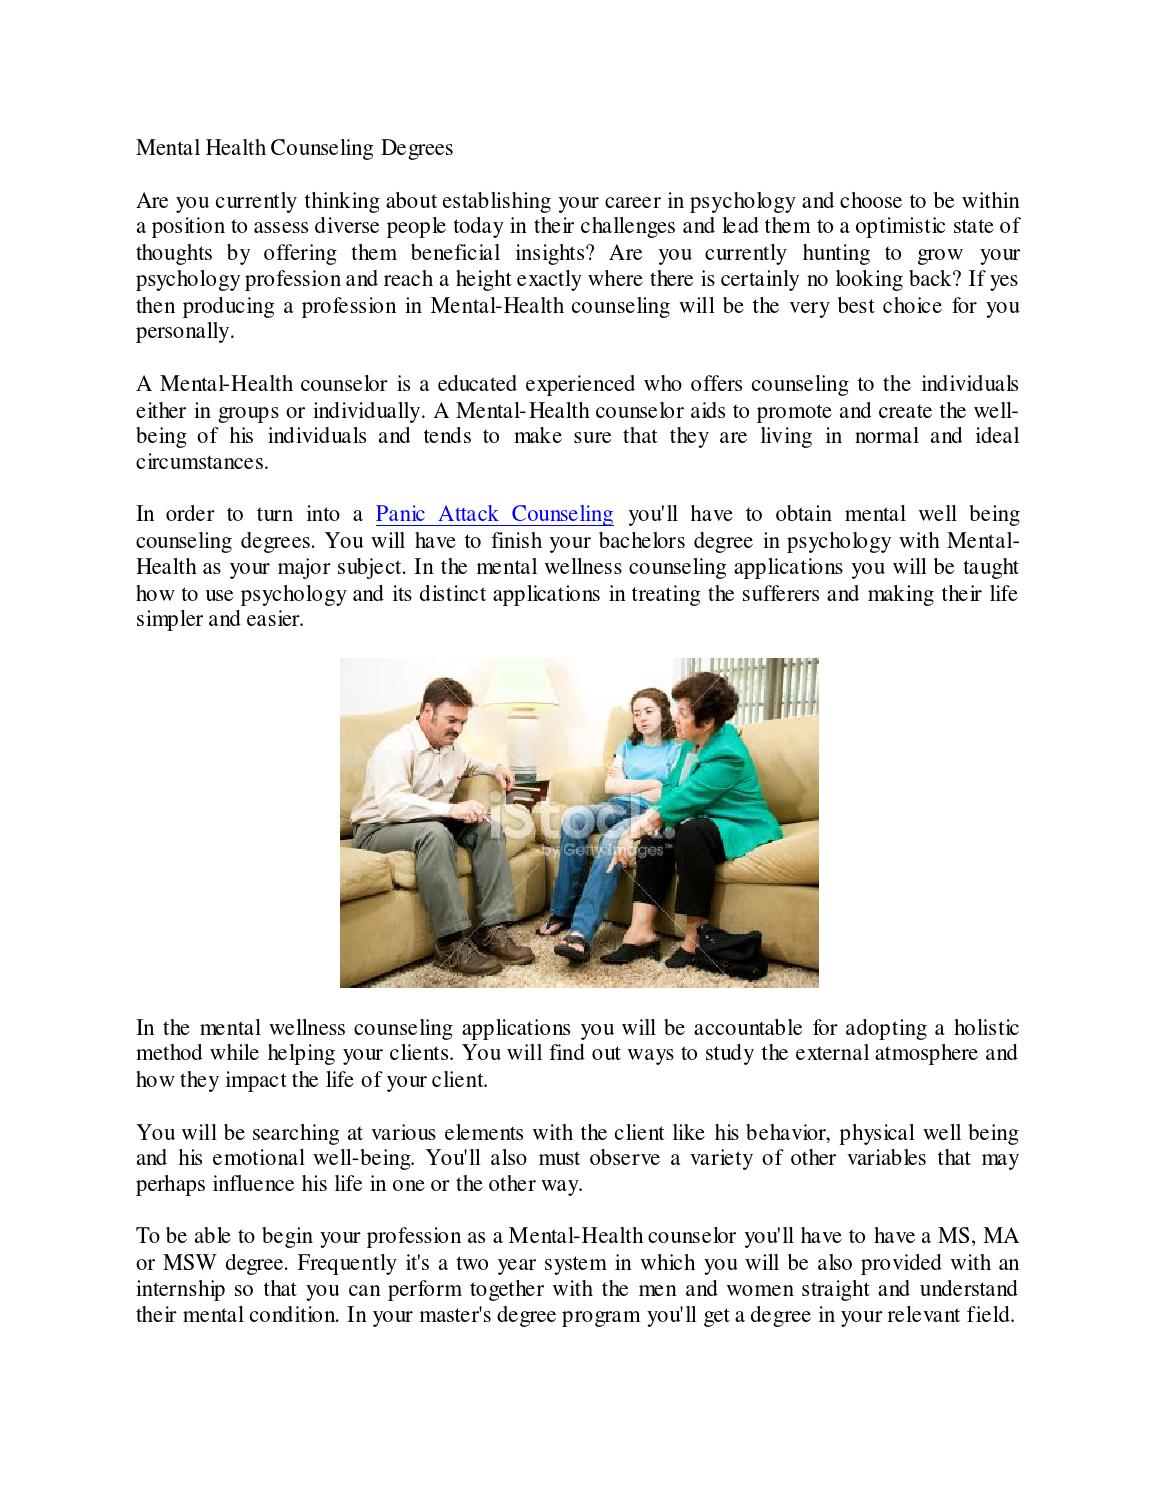 Mental Health Counseling Degree1 By Ninespere Issuu